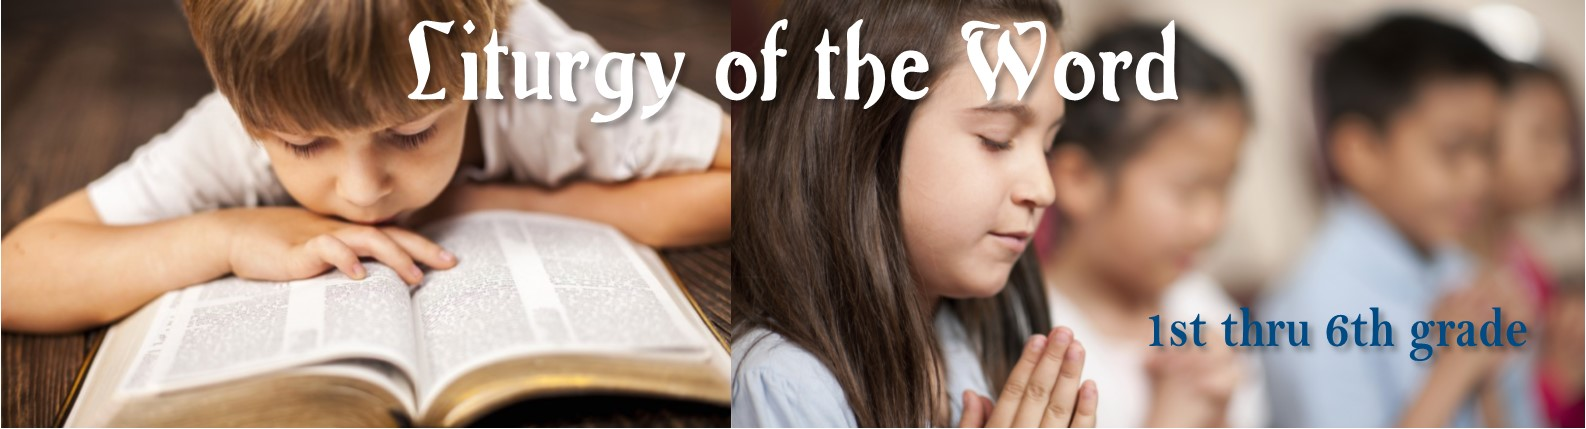 Children's Liturgy of the Word